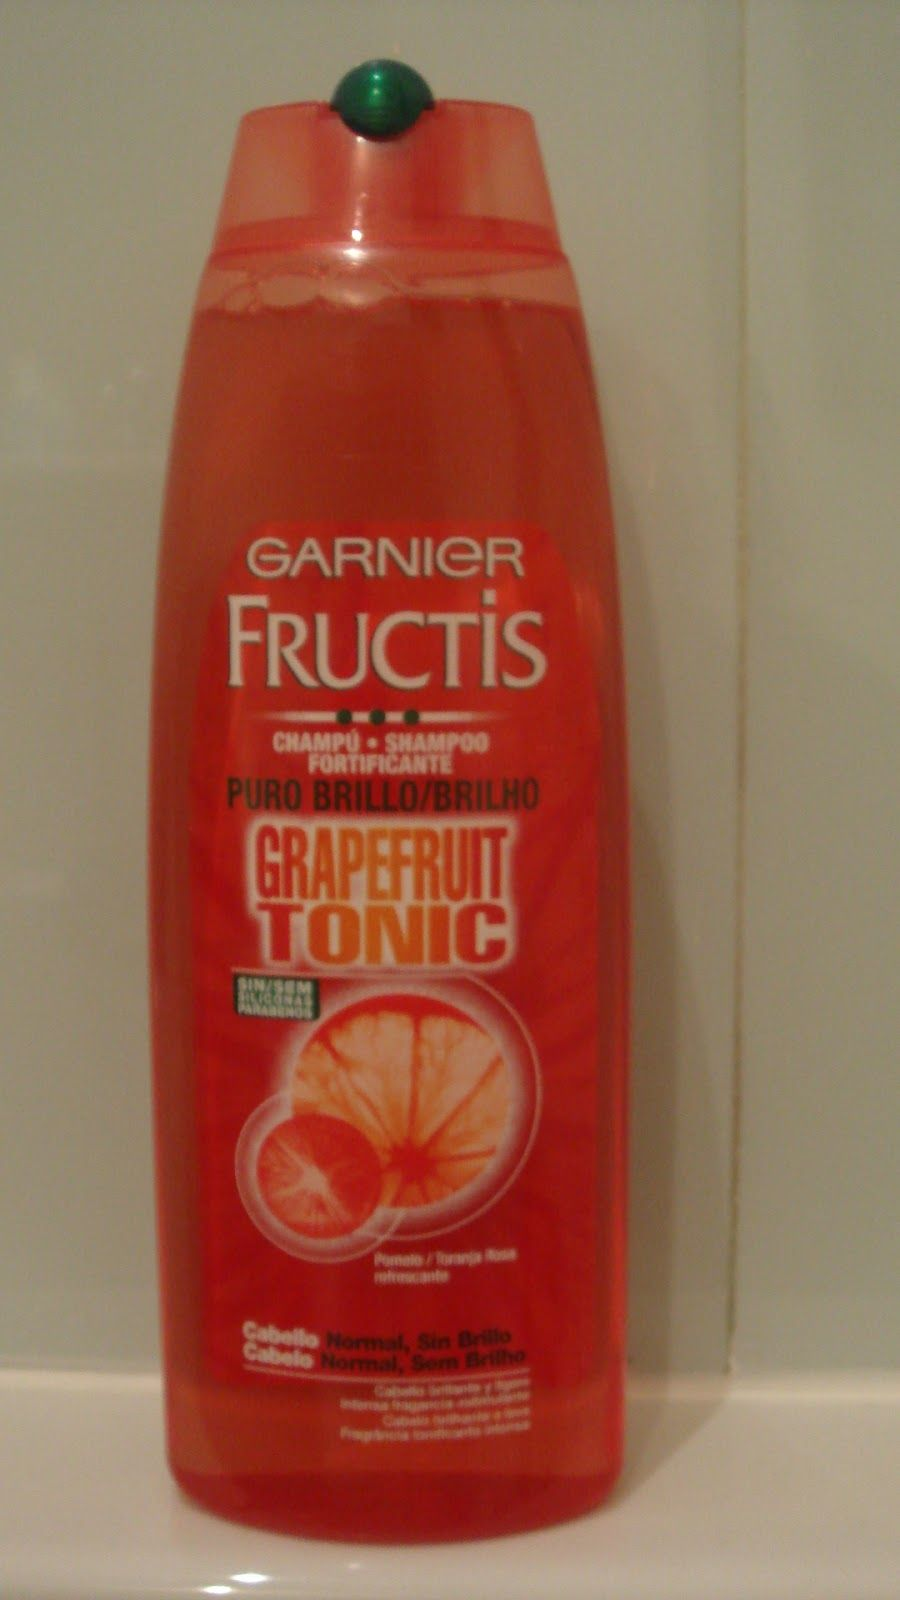 garnier fructis grapefruit tonic shampoo good inci hair pinterest shampoos. Black Bedroom Furniture Sets. Home Design Ideas